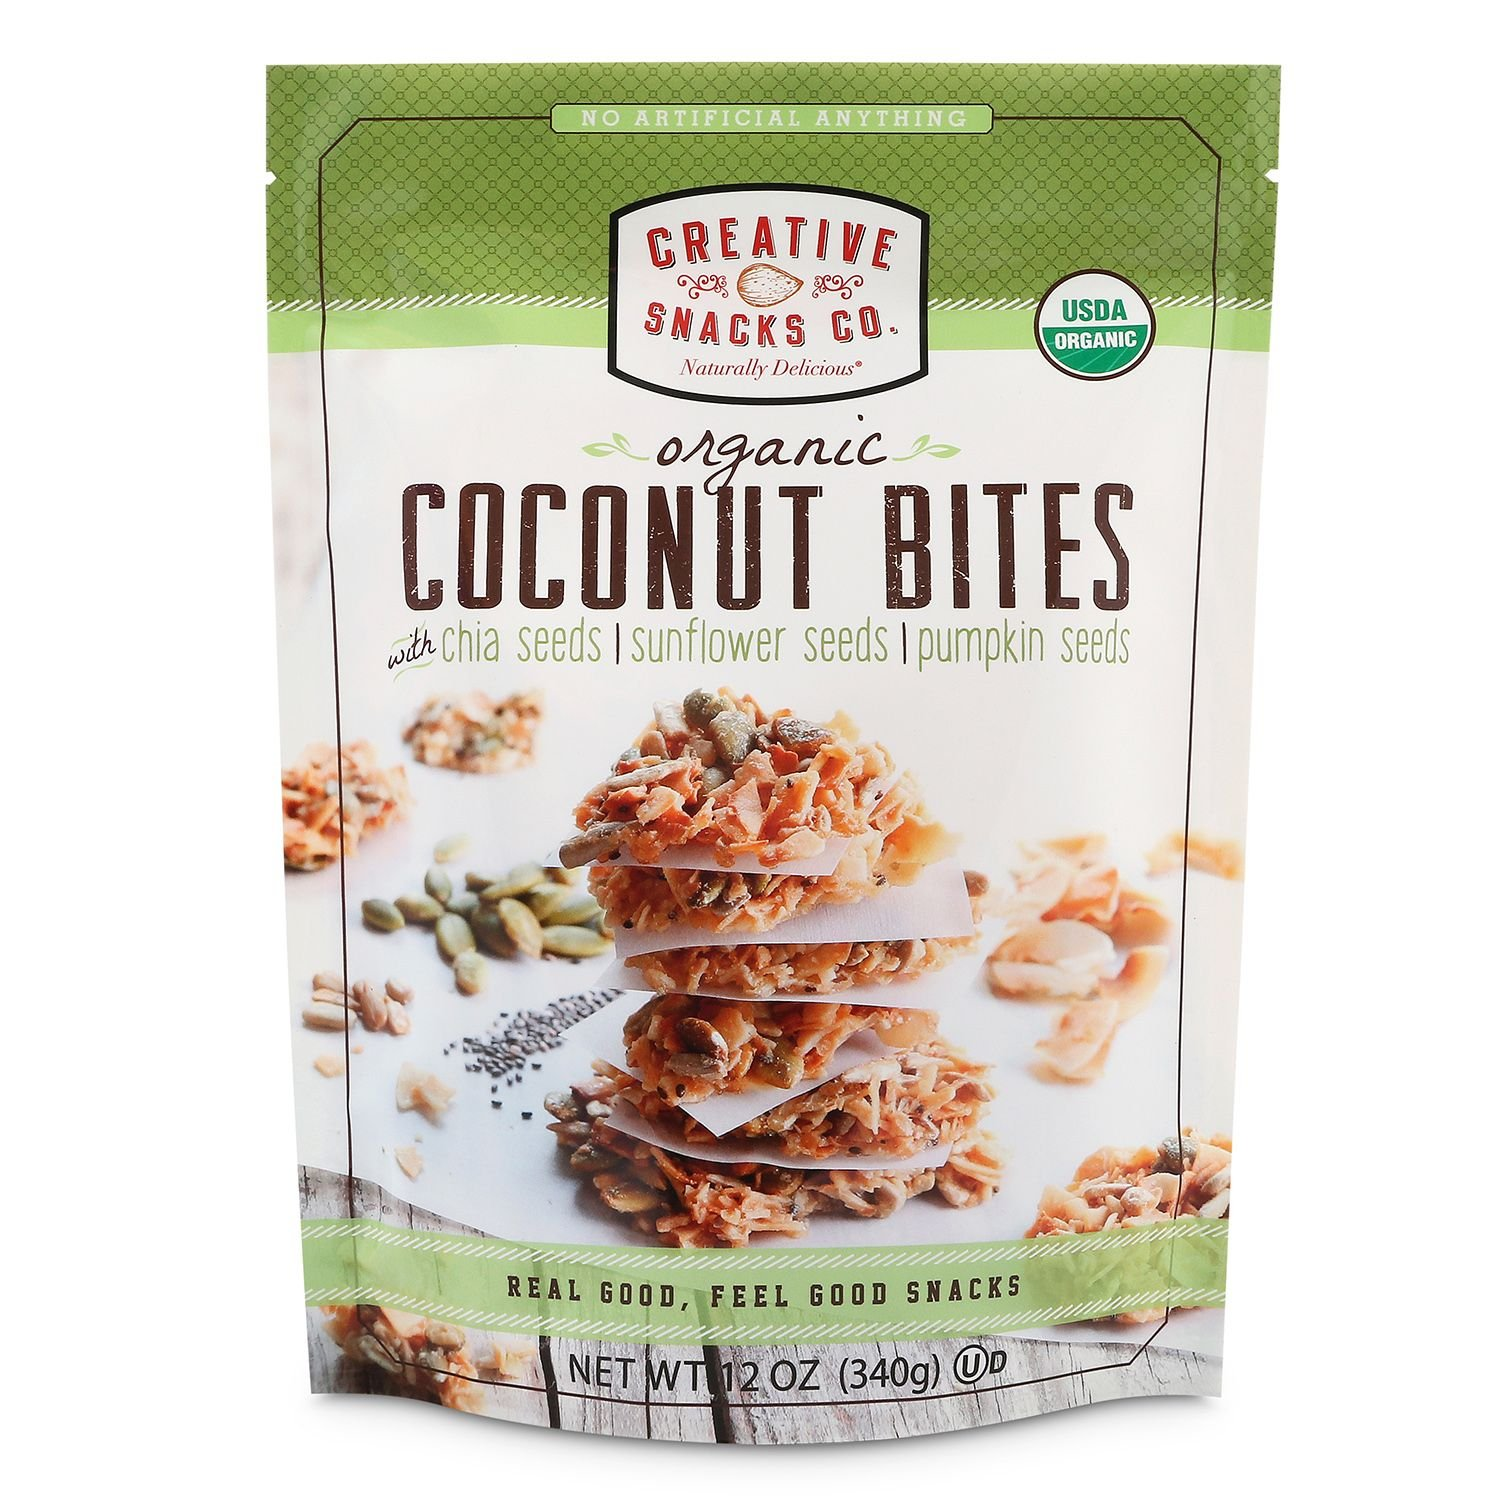 Creative Snacks Organic Coconut Bites (12 oz.) (pack of 6)